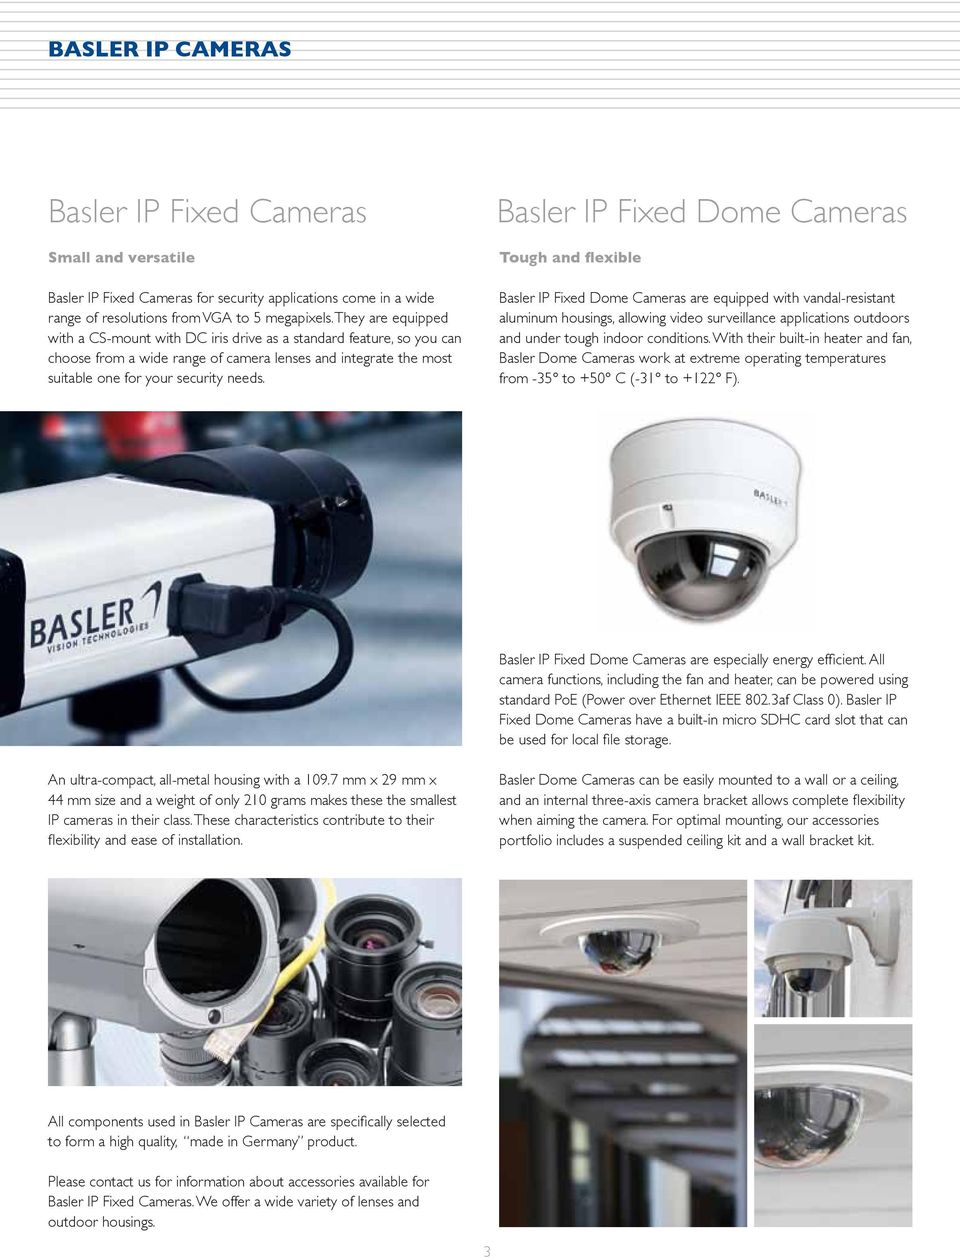 Basler IP Fixed Dome Cameras Tough and flexible Basler IP Fixed Dome Cameras are equipped with vandal-resistant aluminum housings, allowing video surveillance applications outdoors and under tough